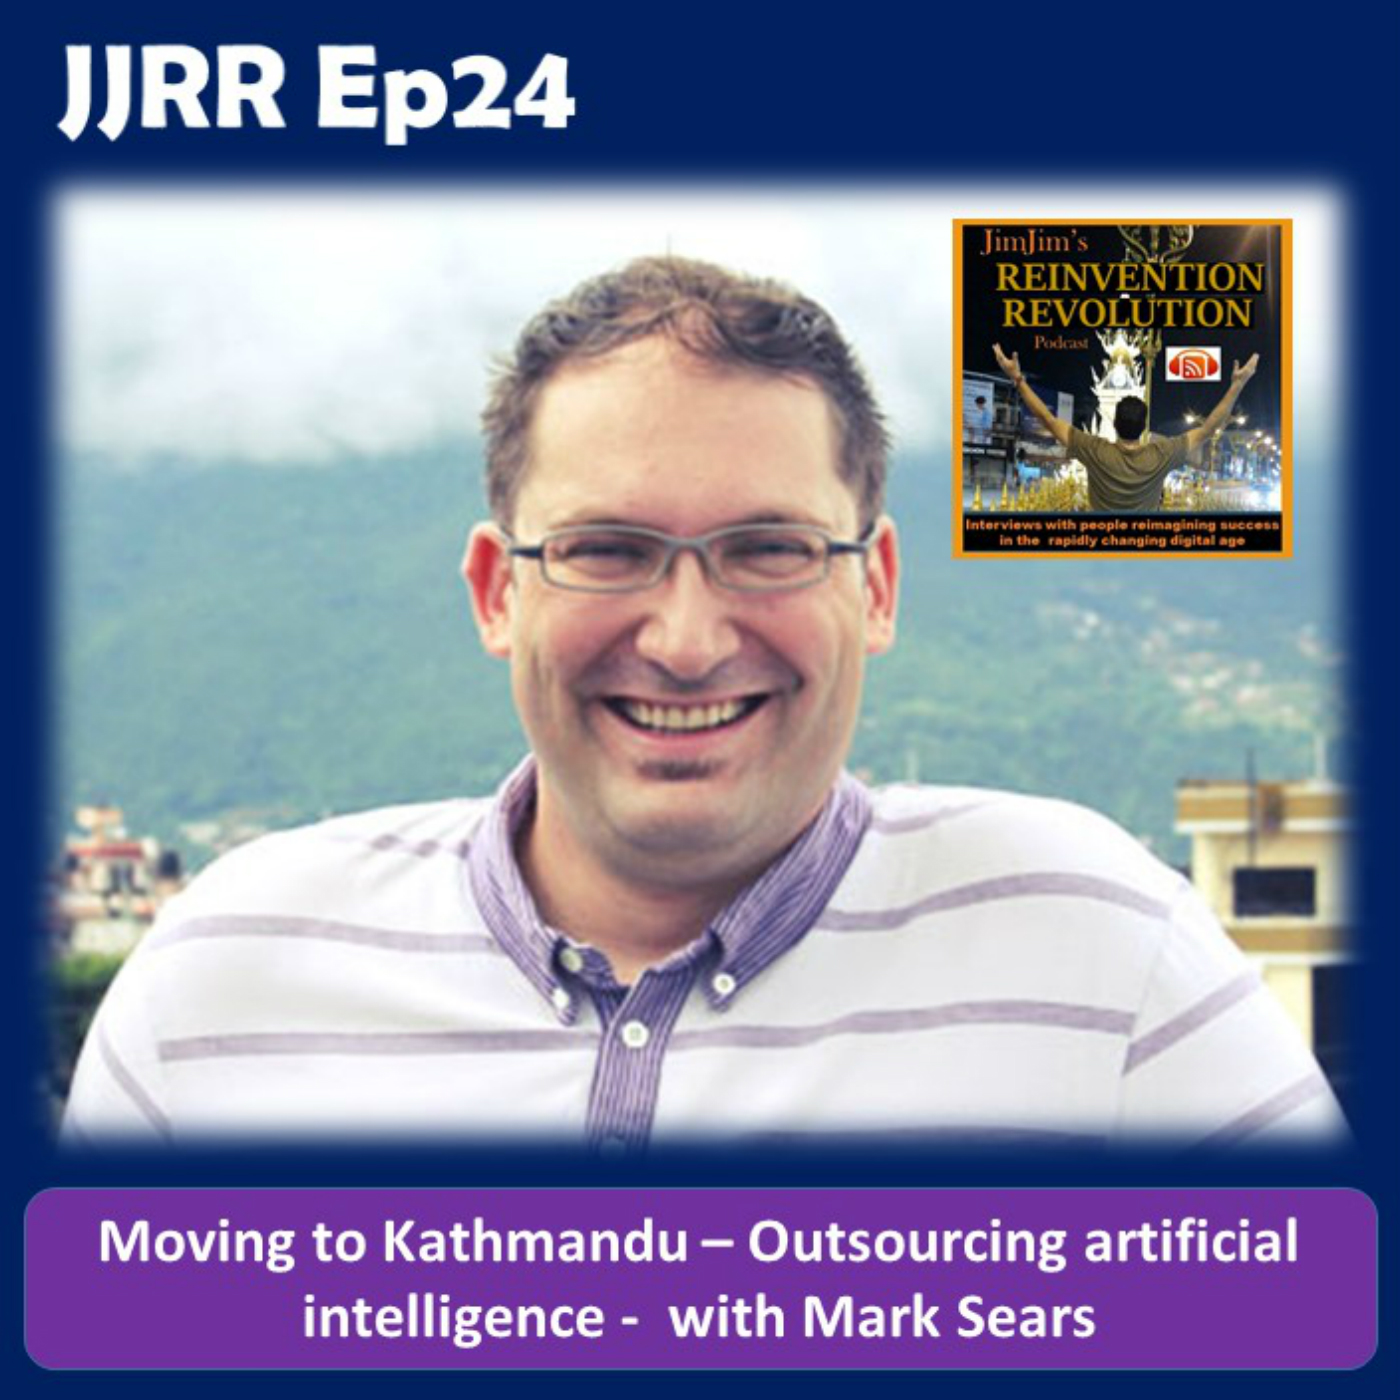 JJRR Ep24 Moving to Kathmandu – Outsourcing artificial intelligence – with Mark Sears